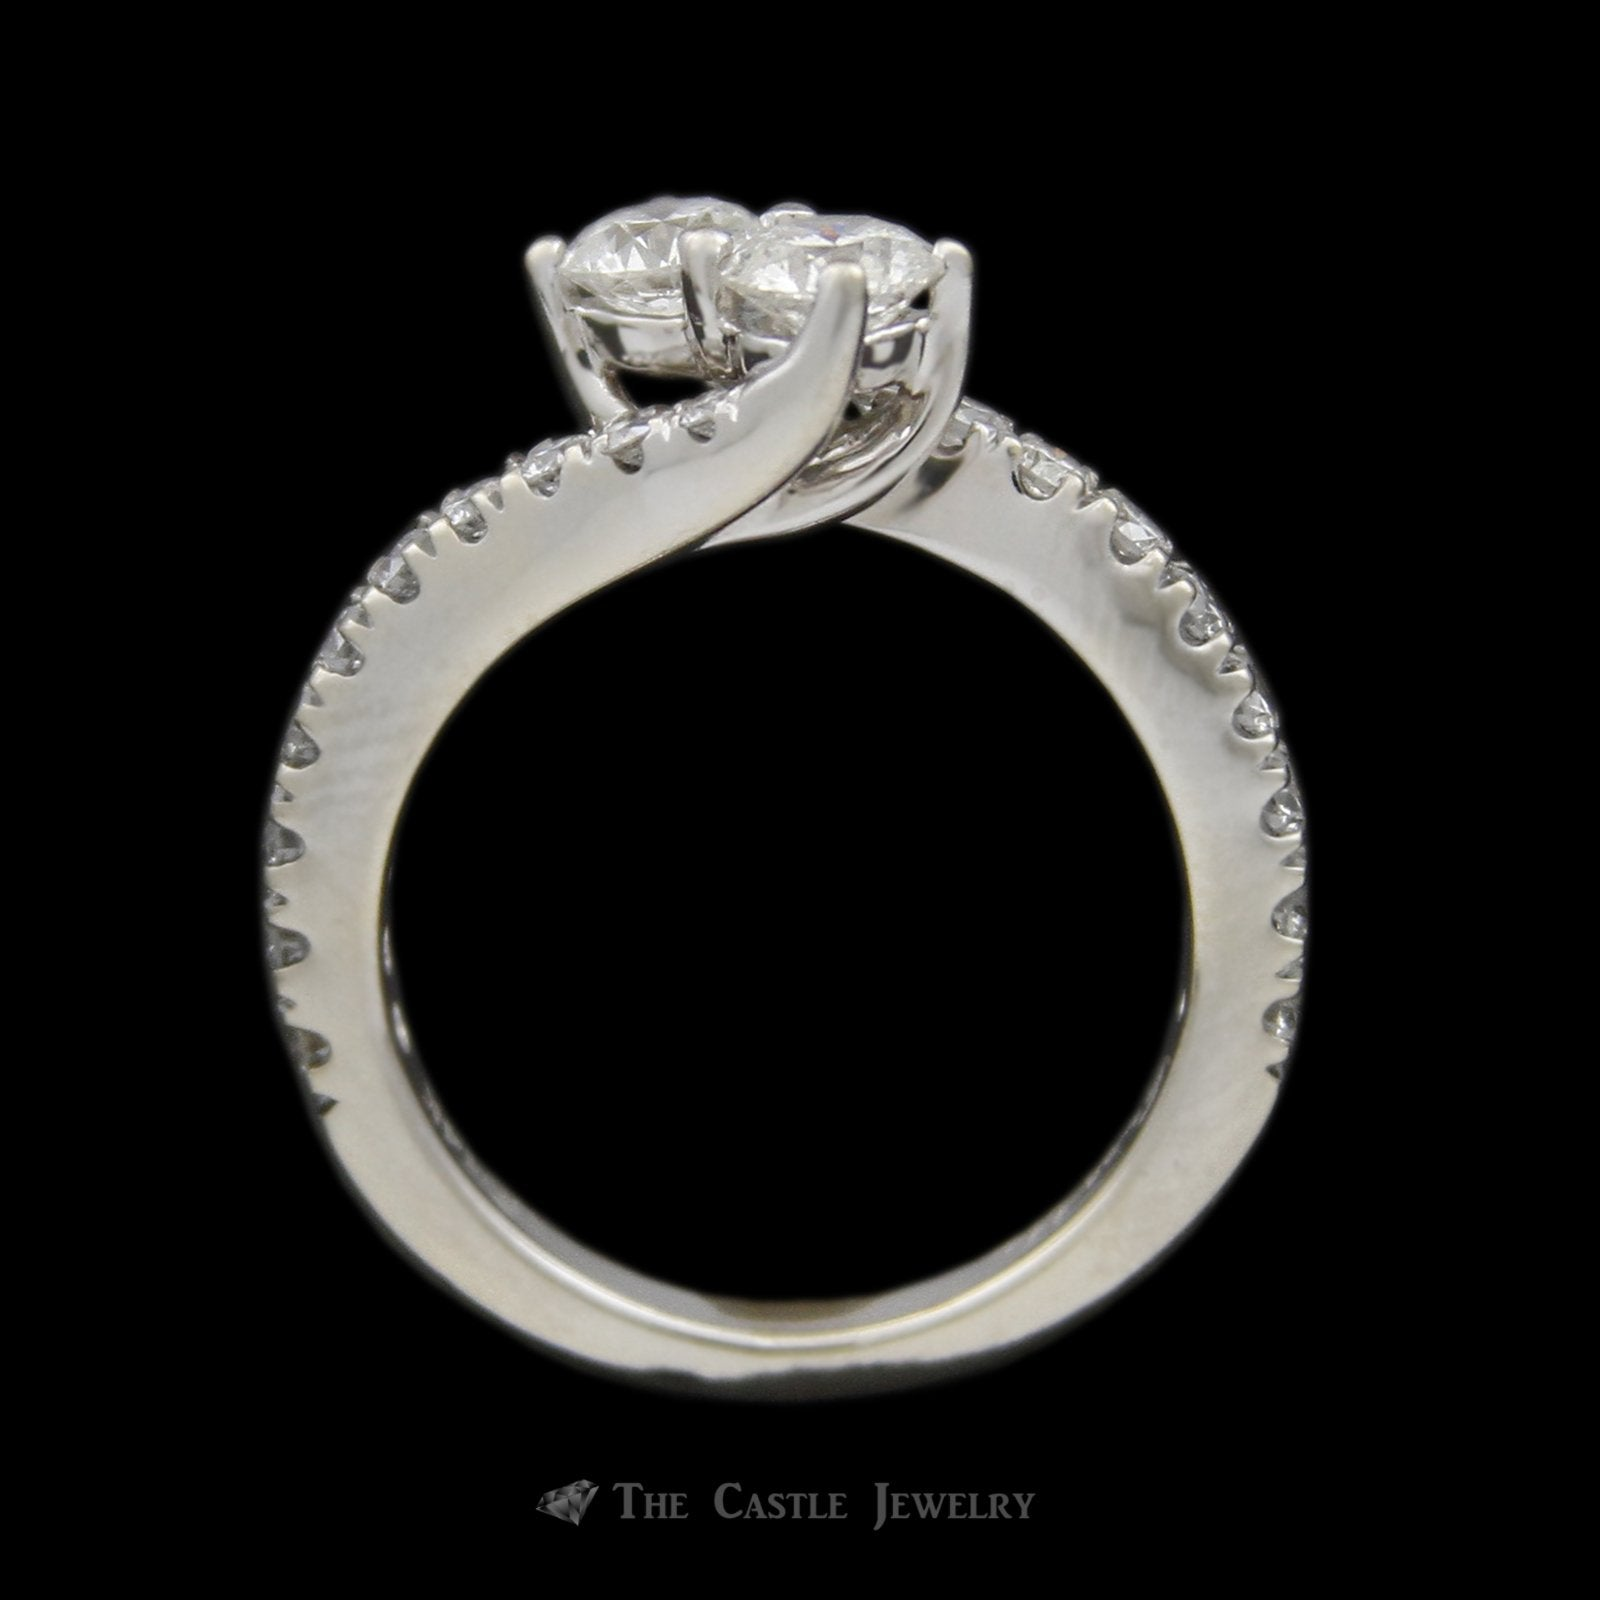 Ever Us 1.50cttw 2 Round Brilliant Cut Diamond Bypass Ring in 14K White Gold-1